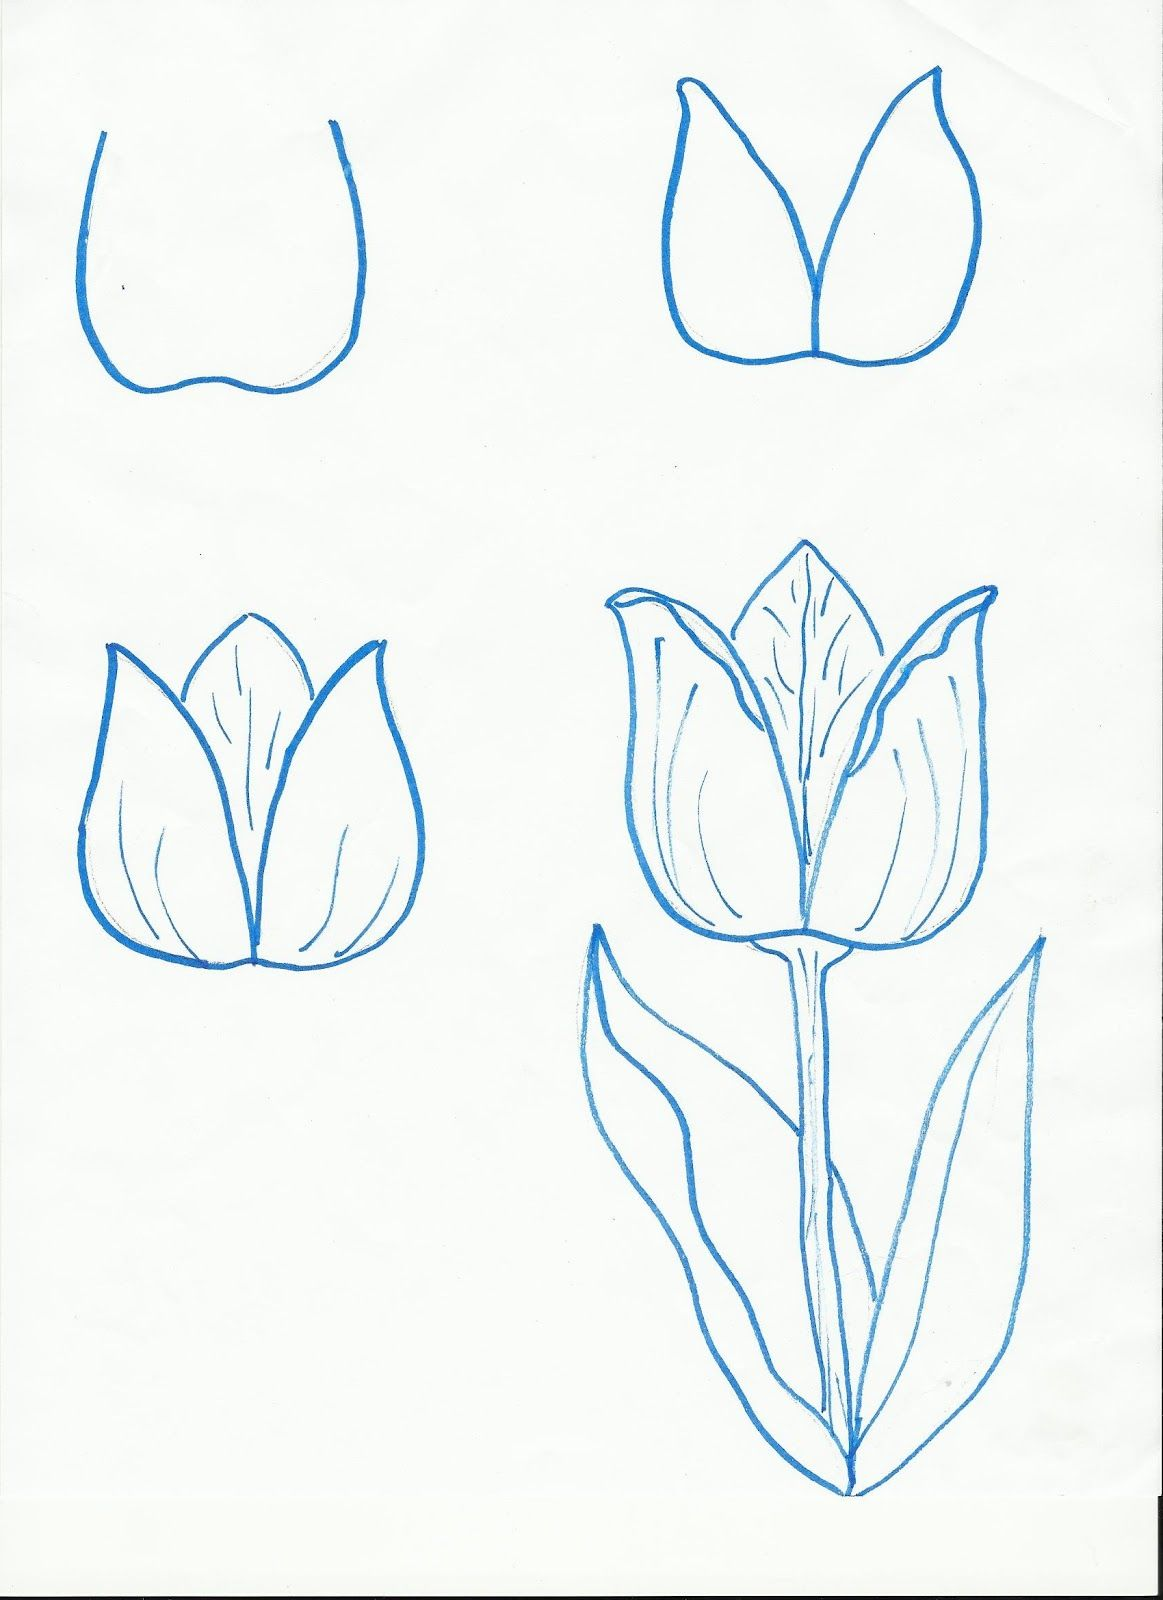 Http Imagesci Com Img 2013 12 Tulip Drawing 26680 Hd Wallpapers Jpg Flower Drawing Easy Drawings Tulip Drawing